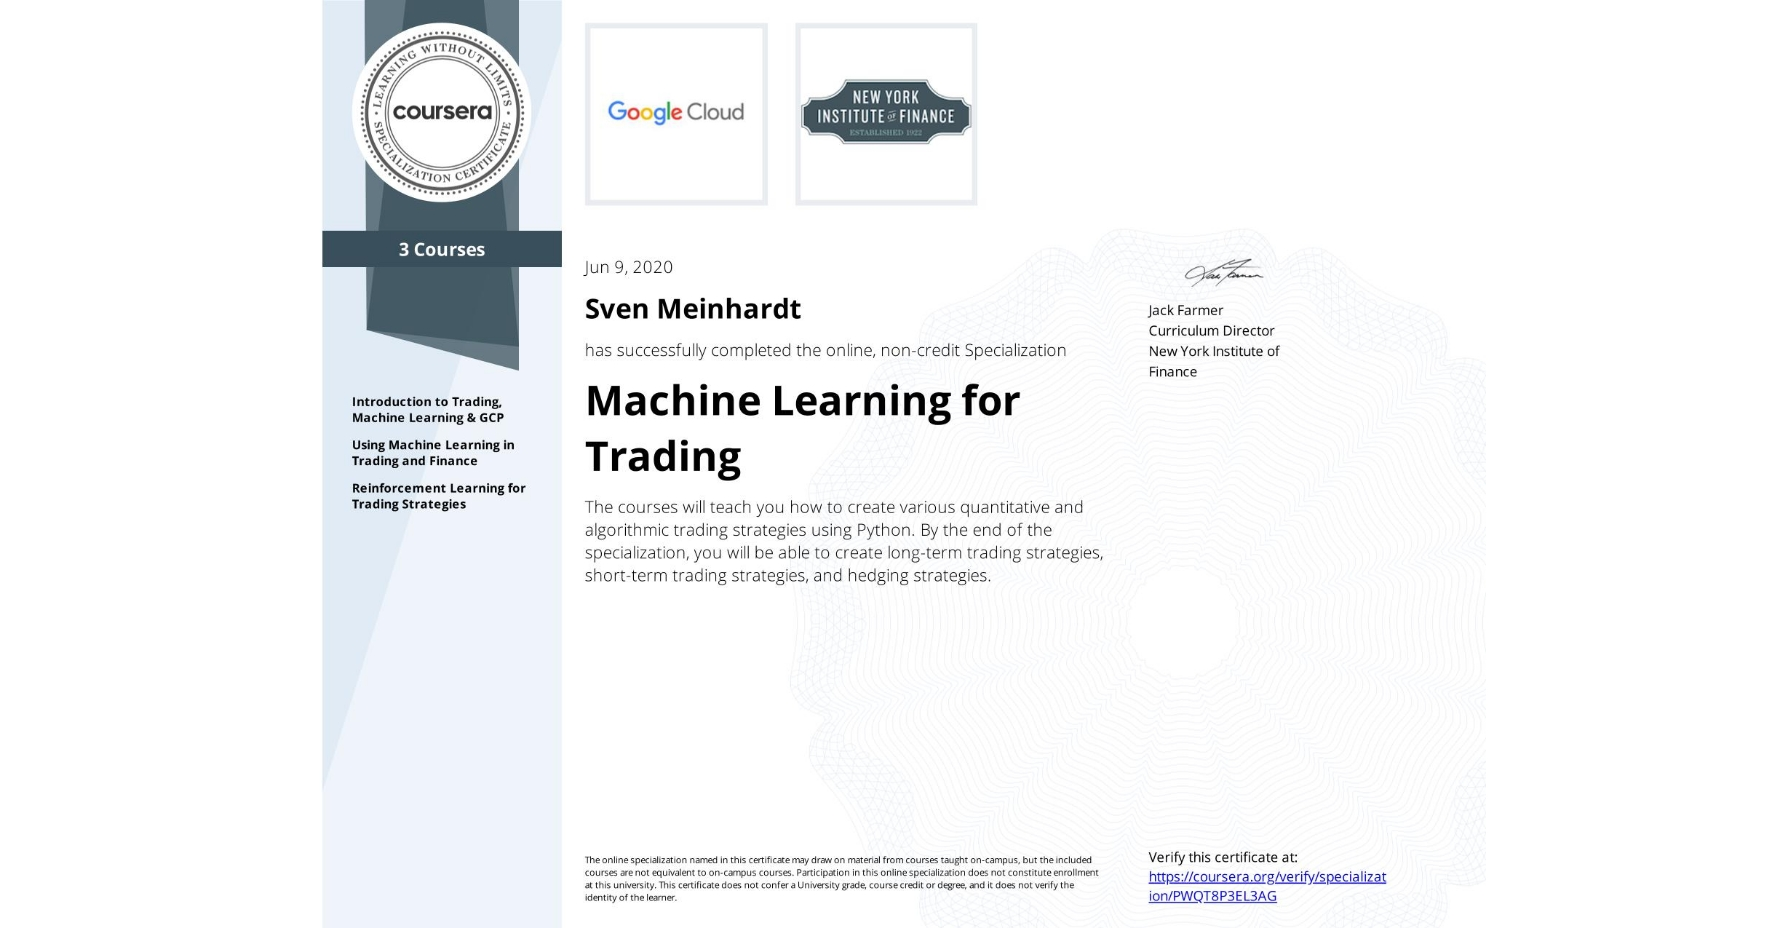 View certificate for Sven Meinhardt, Machine Learning for Trading, offered through Coursera. The courses will teach you how to create various quantitative and algorithmic trading strategies using Python. By the end of the specialization, you will be able to create long-term trading strategies, short-term trading strategies, and hedging strategies.